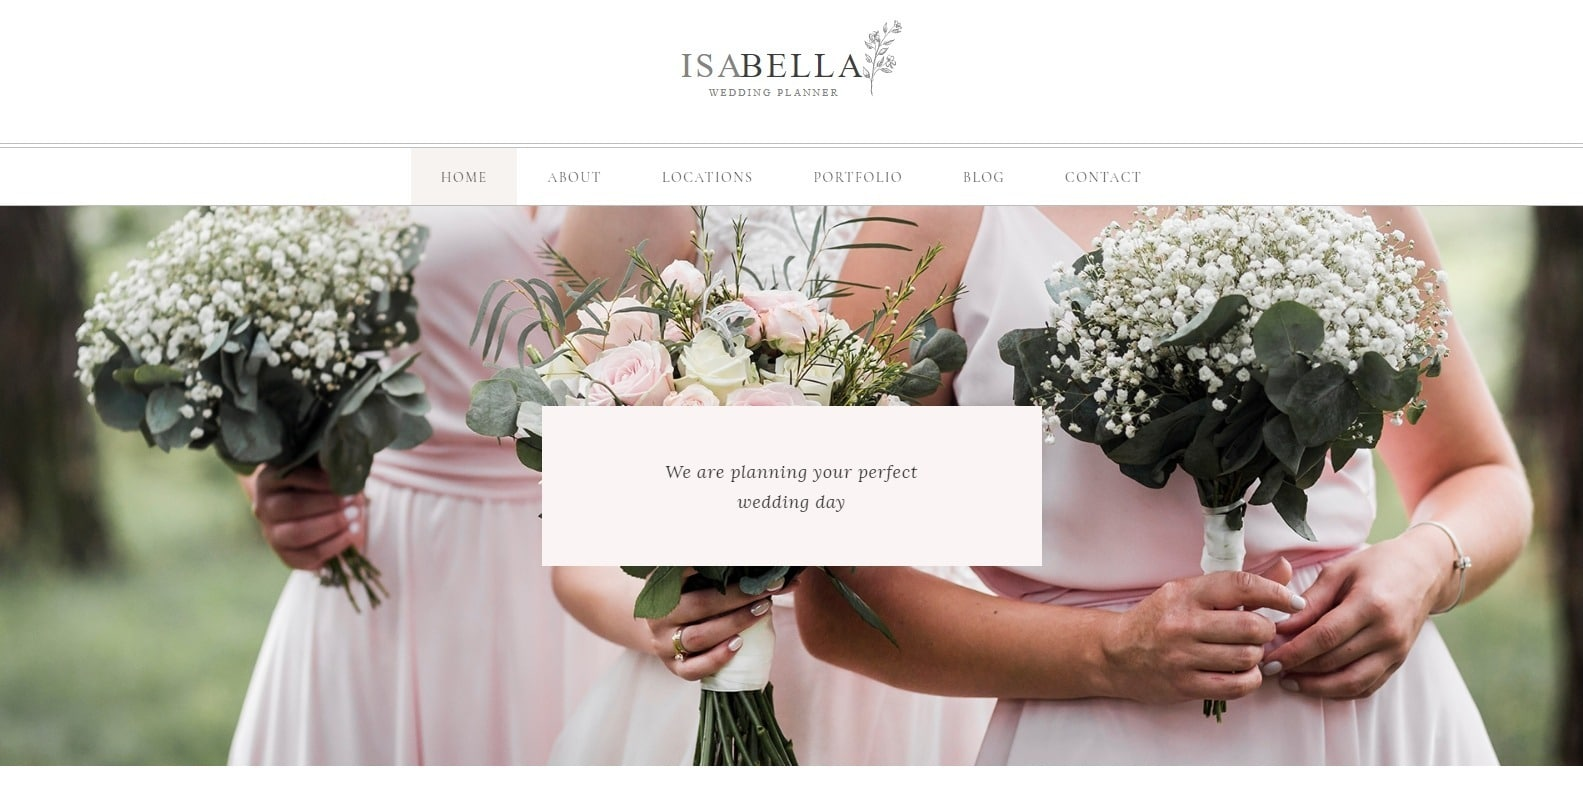 isabella-wedding-website-template